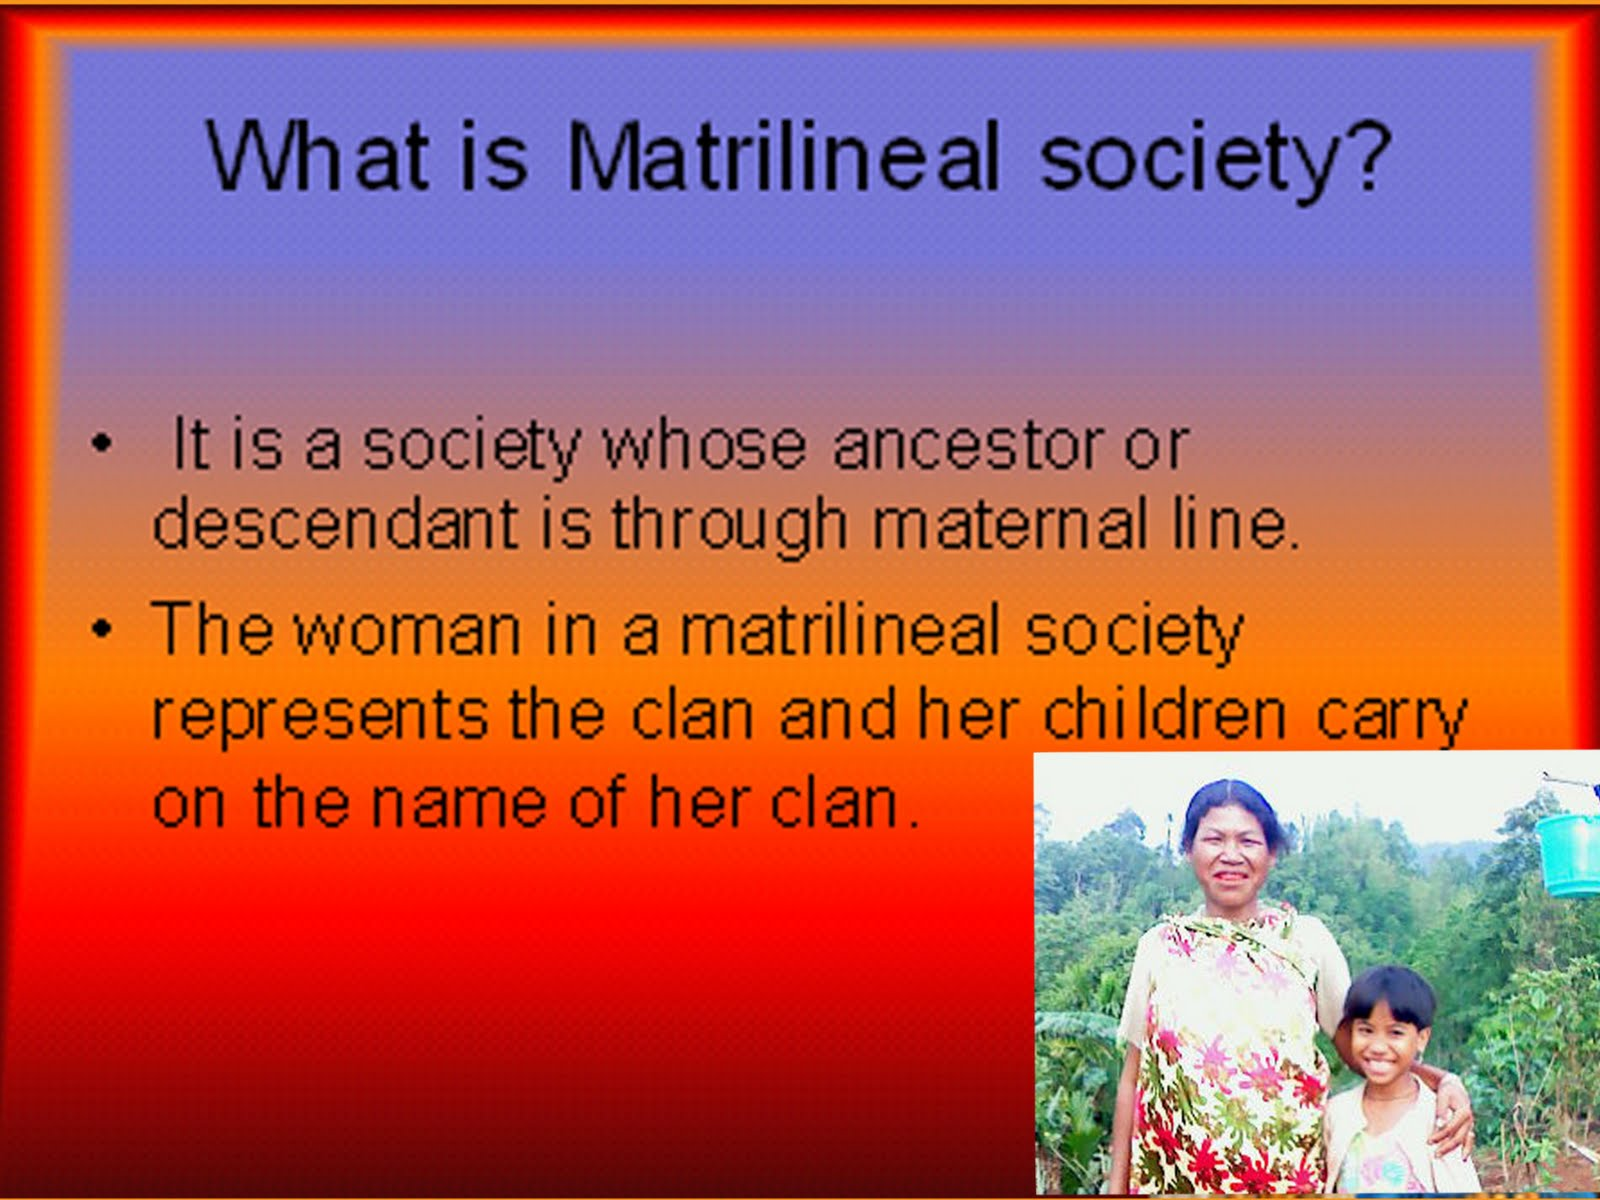 COME AND SEE: WHAT IS MATRILINEAL SOCIETY?